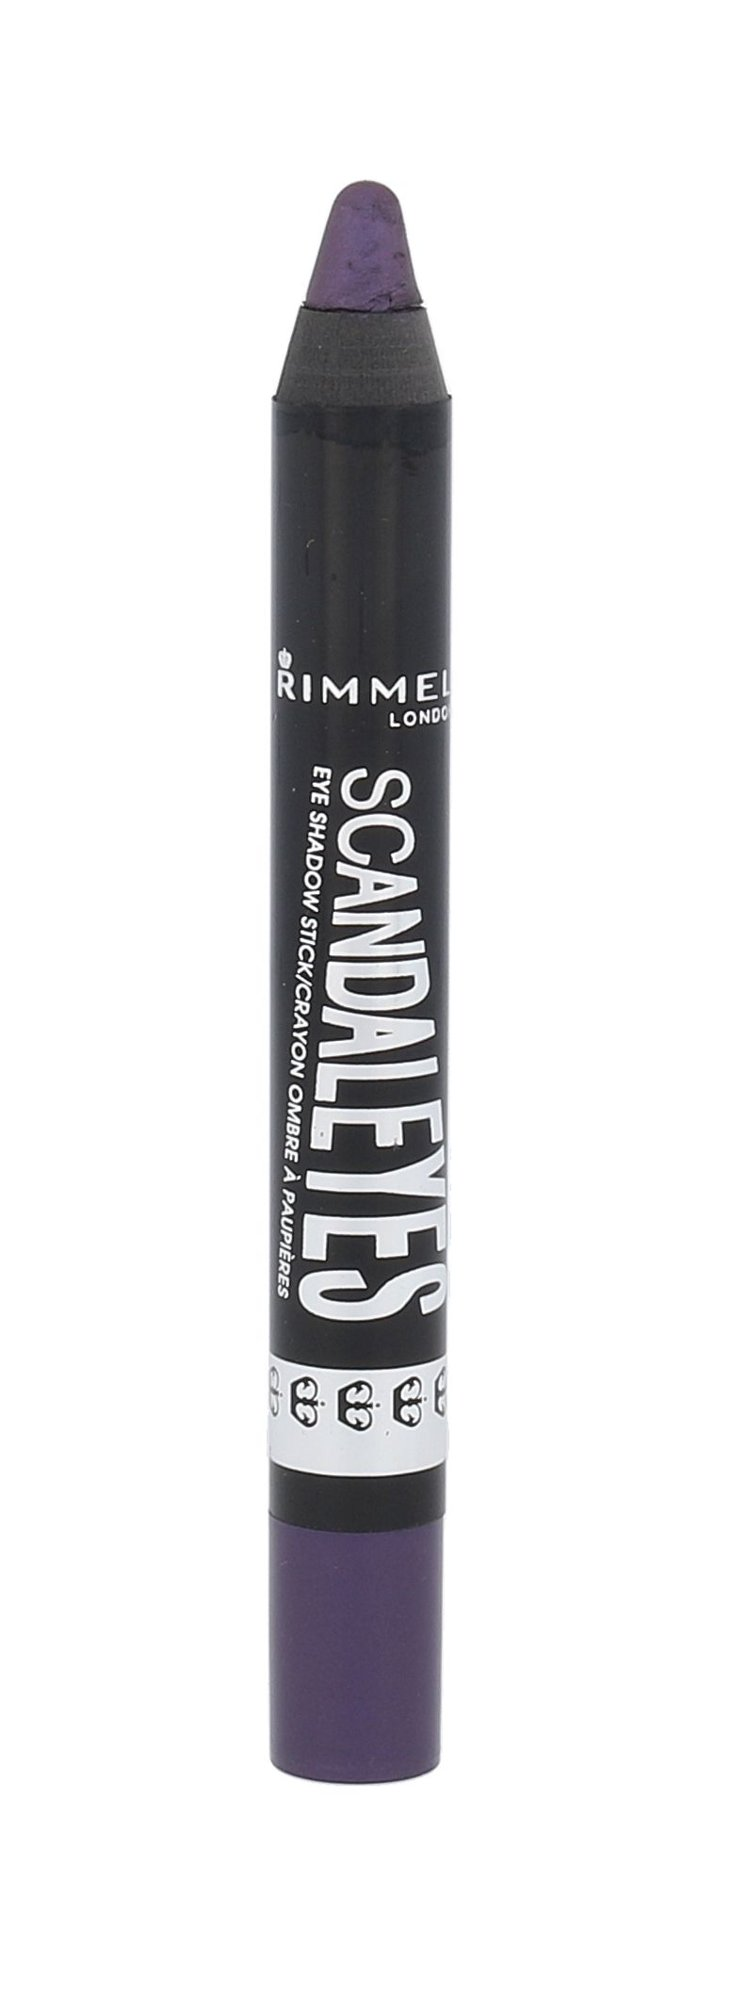 Rimmel London Scandal Eyes Cosmetic 3,25ml 006 Paranoid Purple